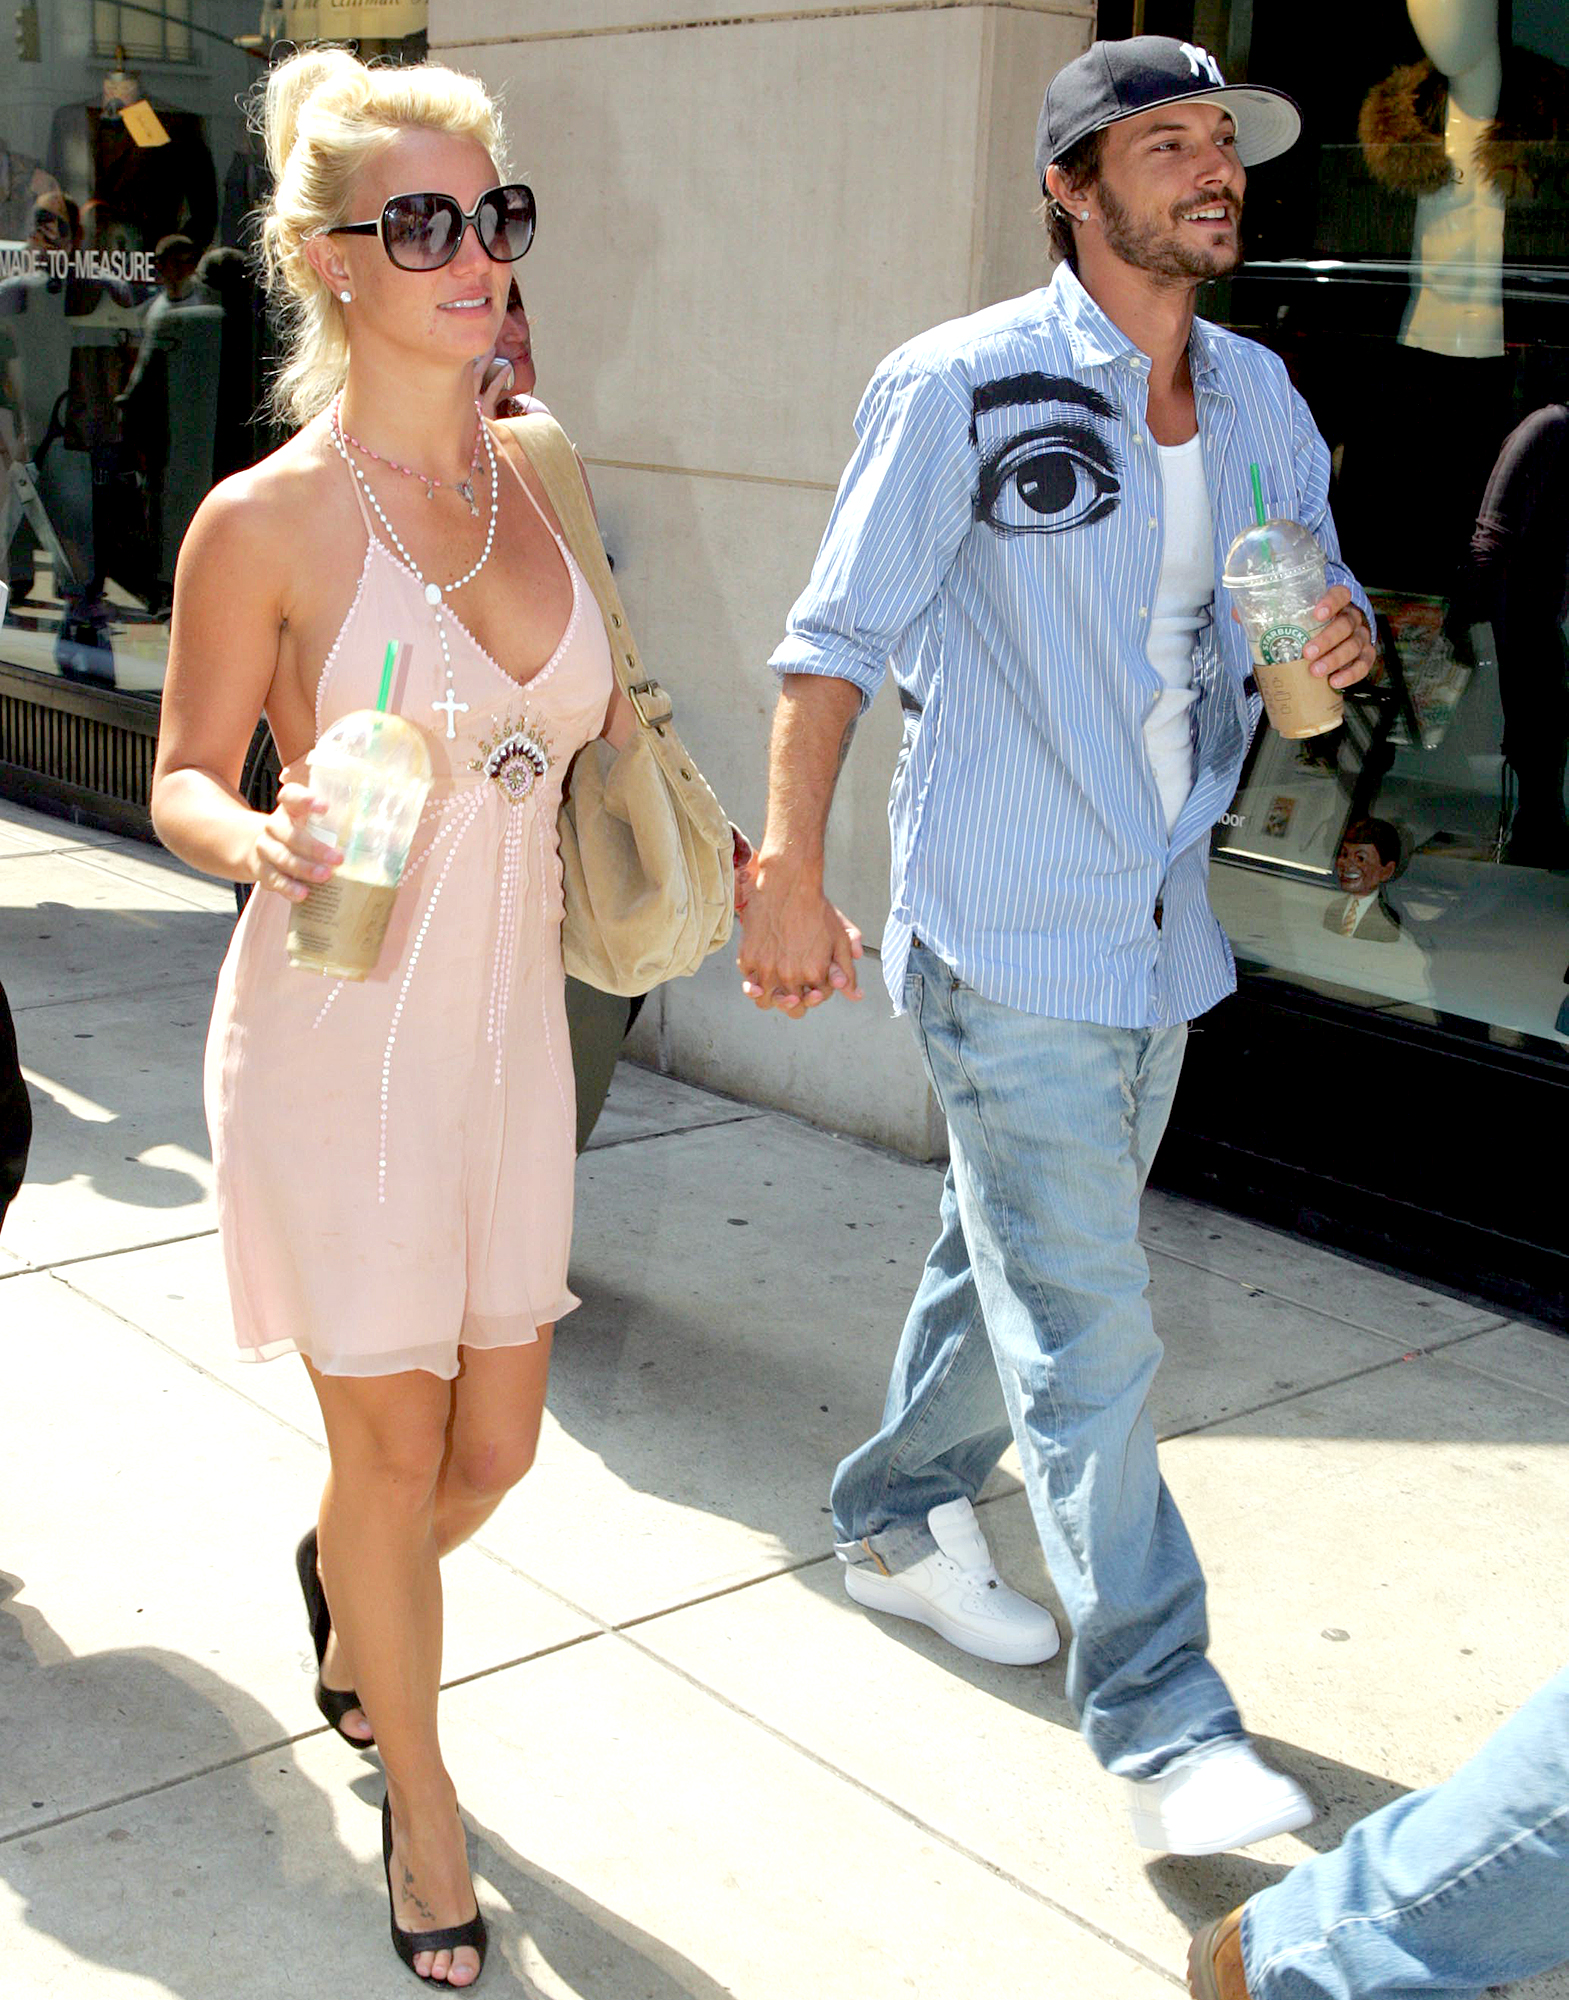 """March-2013-Kevin-Federline,-Britney-Spears - It was a different story by March 2013: The """"Hold It Against Me"""" singer not only joined Federline to cheer their sons on at a soccer game, but also hung out with his then-girlfriend (now wife) Victoria Prince ."""